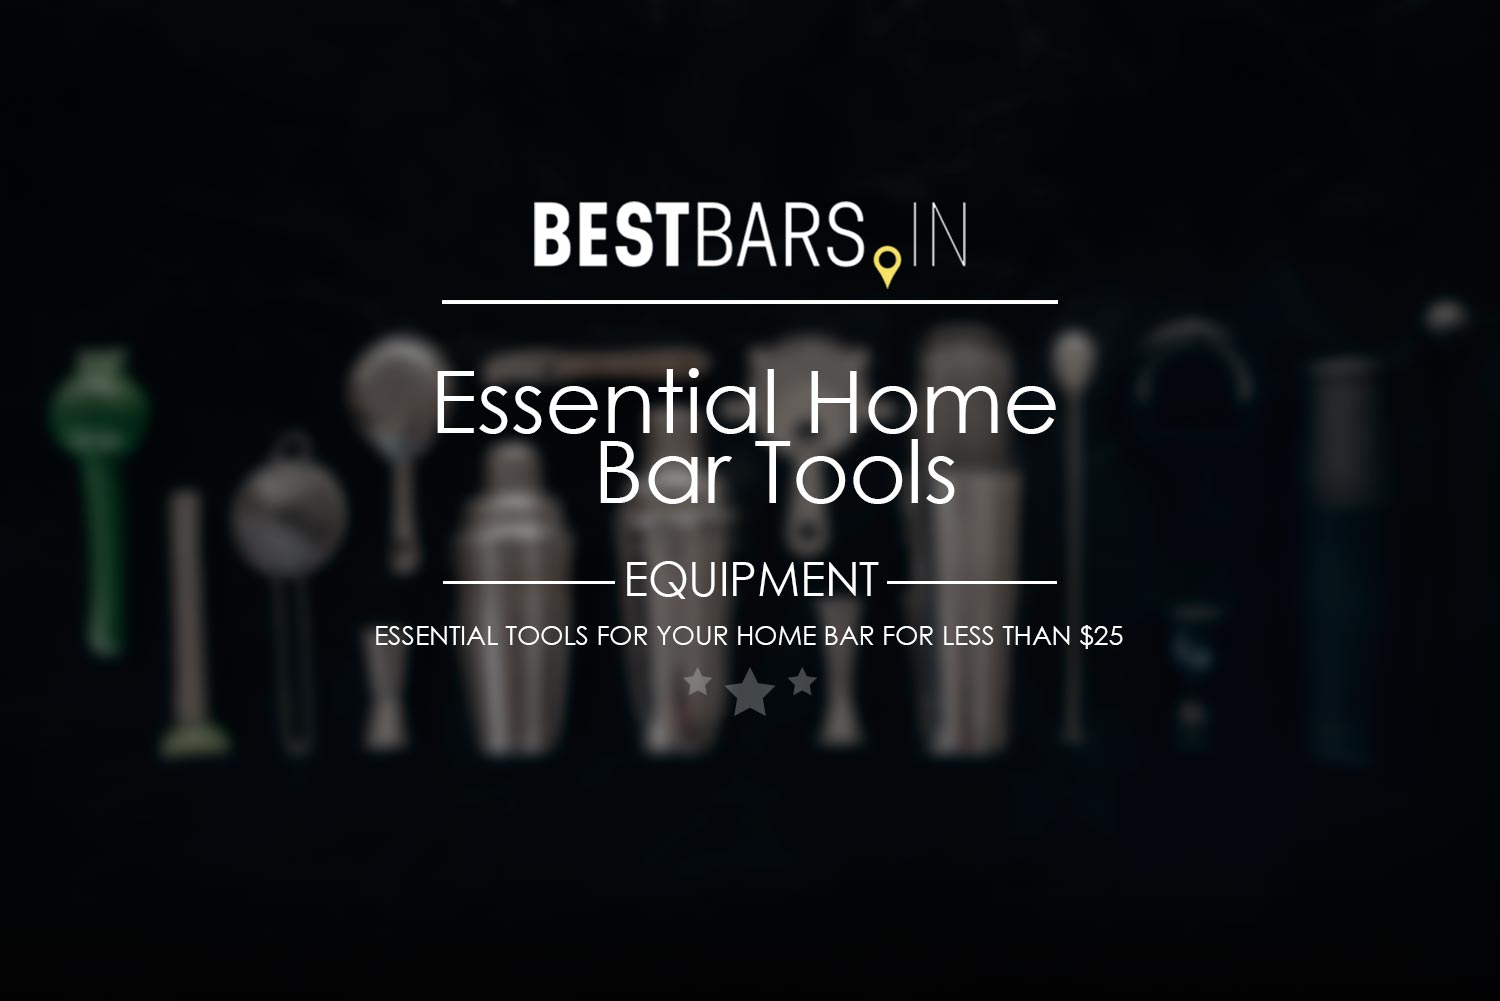 Essential home bar tools cover